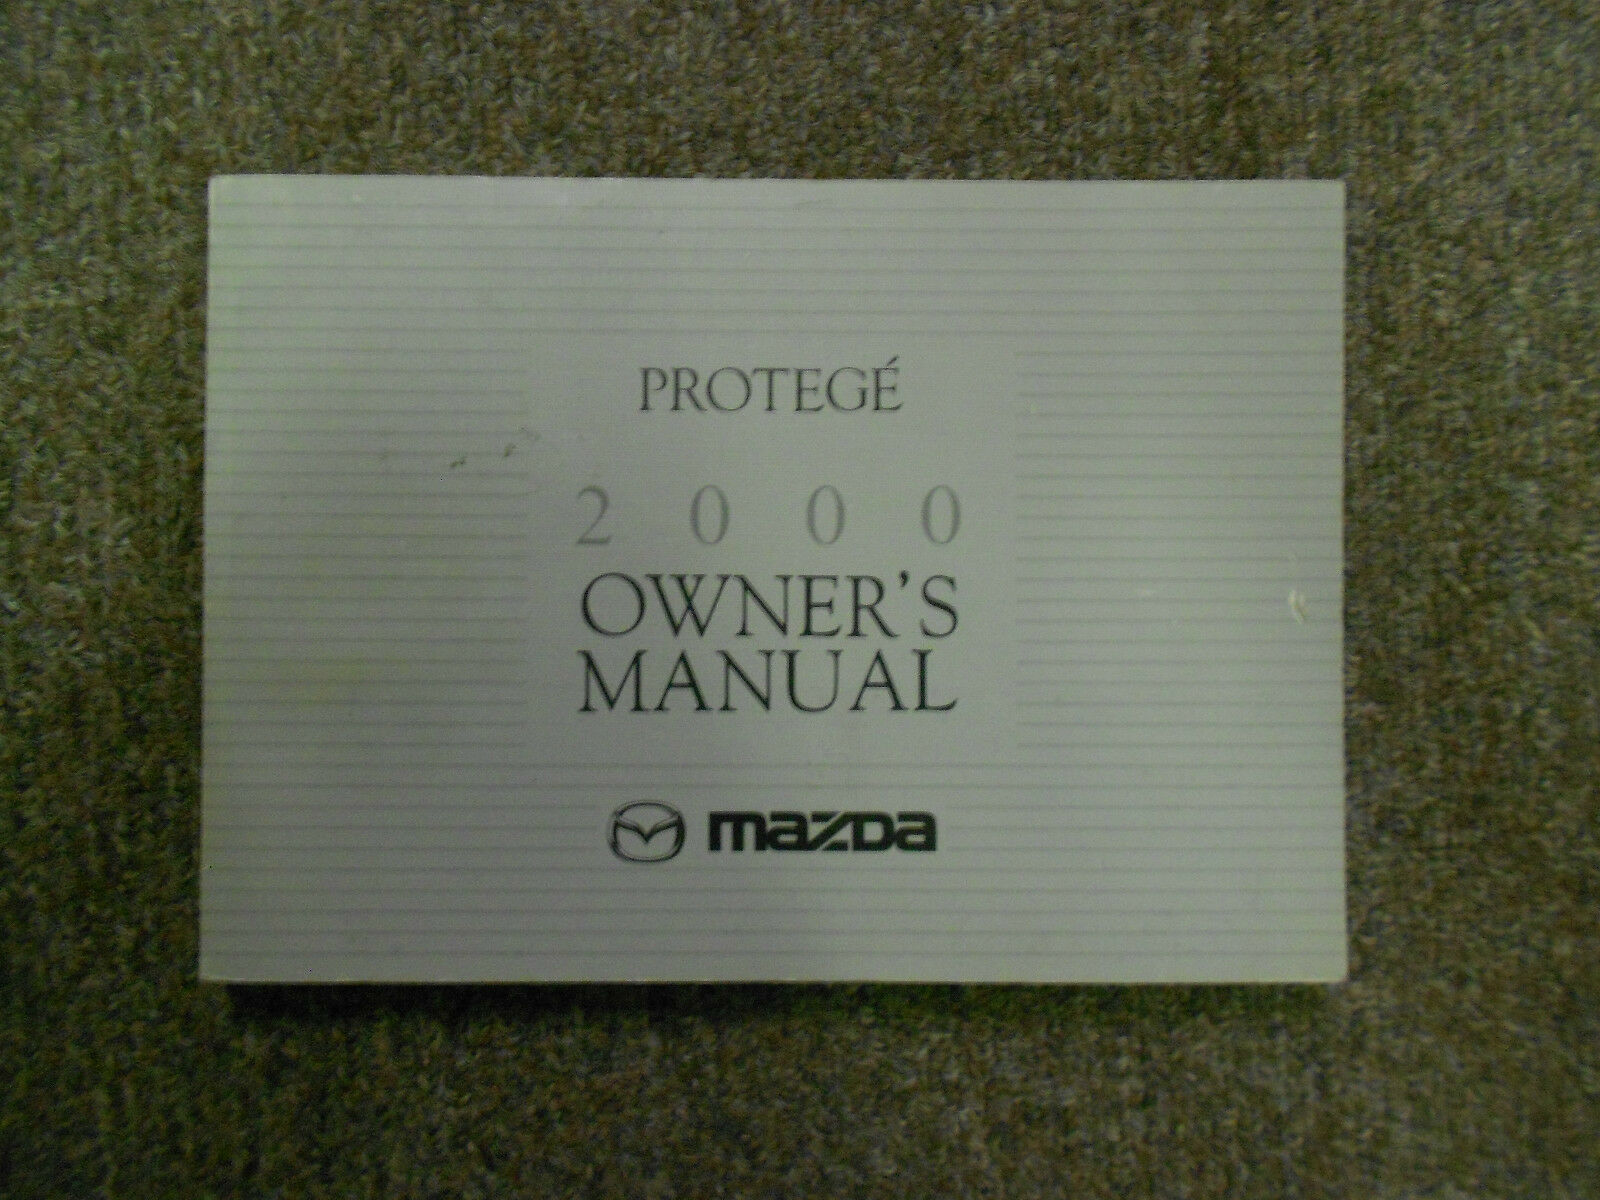 2000 Mazda Protege Owners Manual FACTORY OEM BOOK 00 DEALERSHIP MAZDA x 1  of 12Only 1 available ...